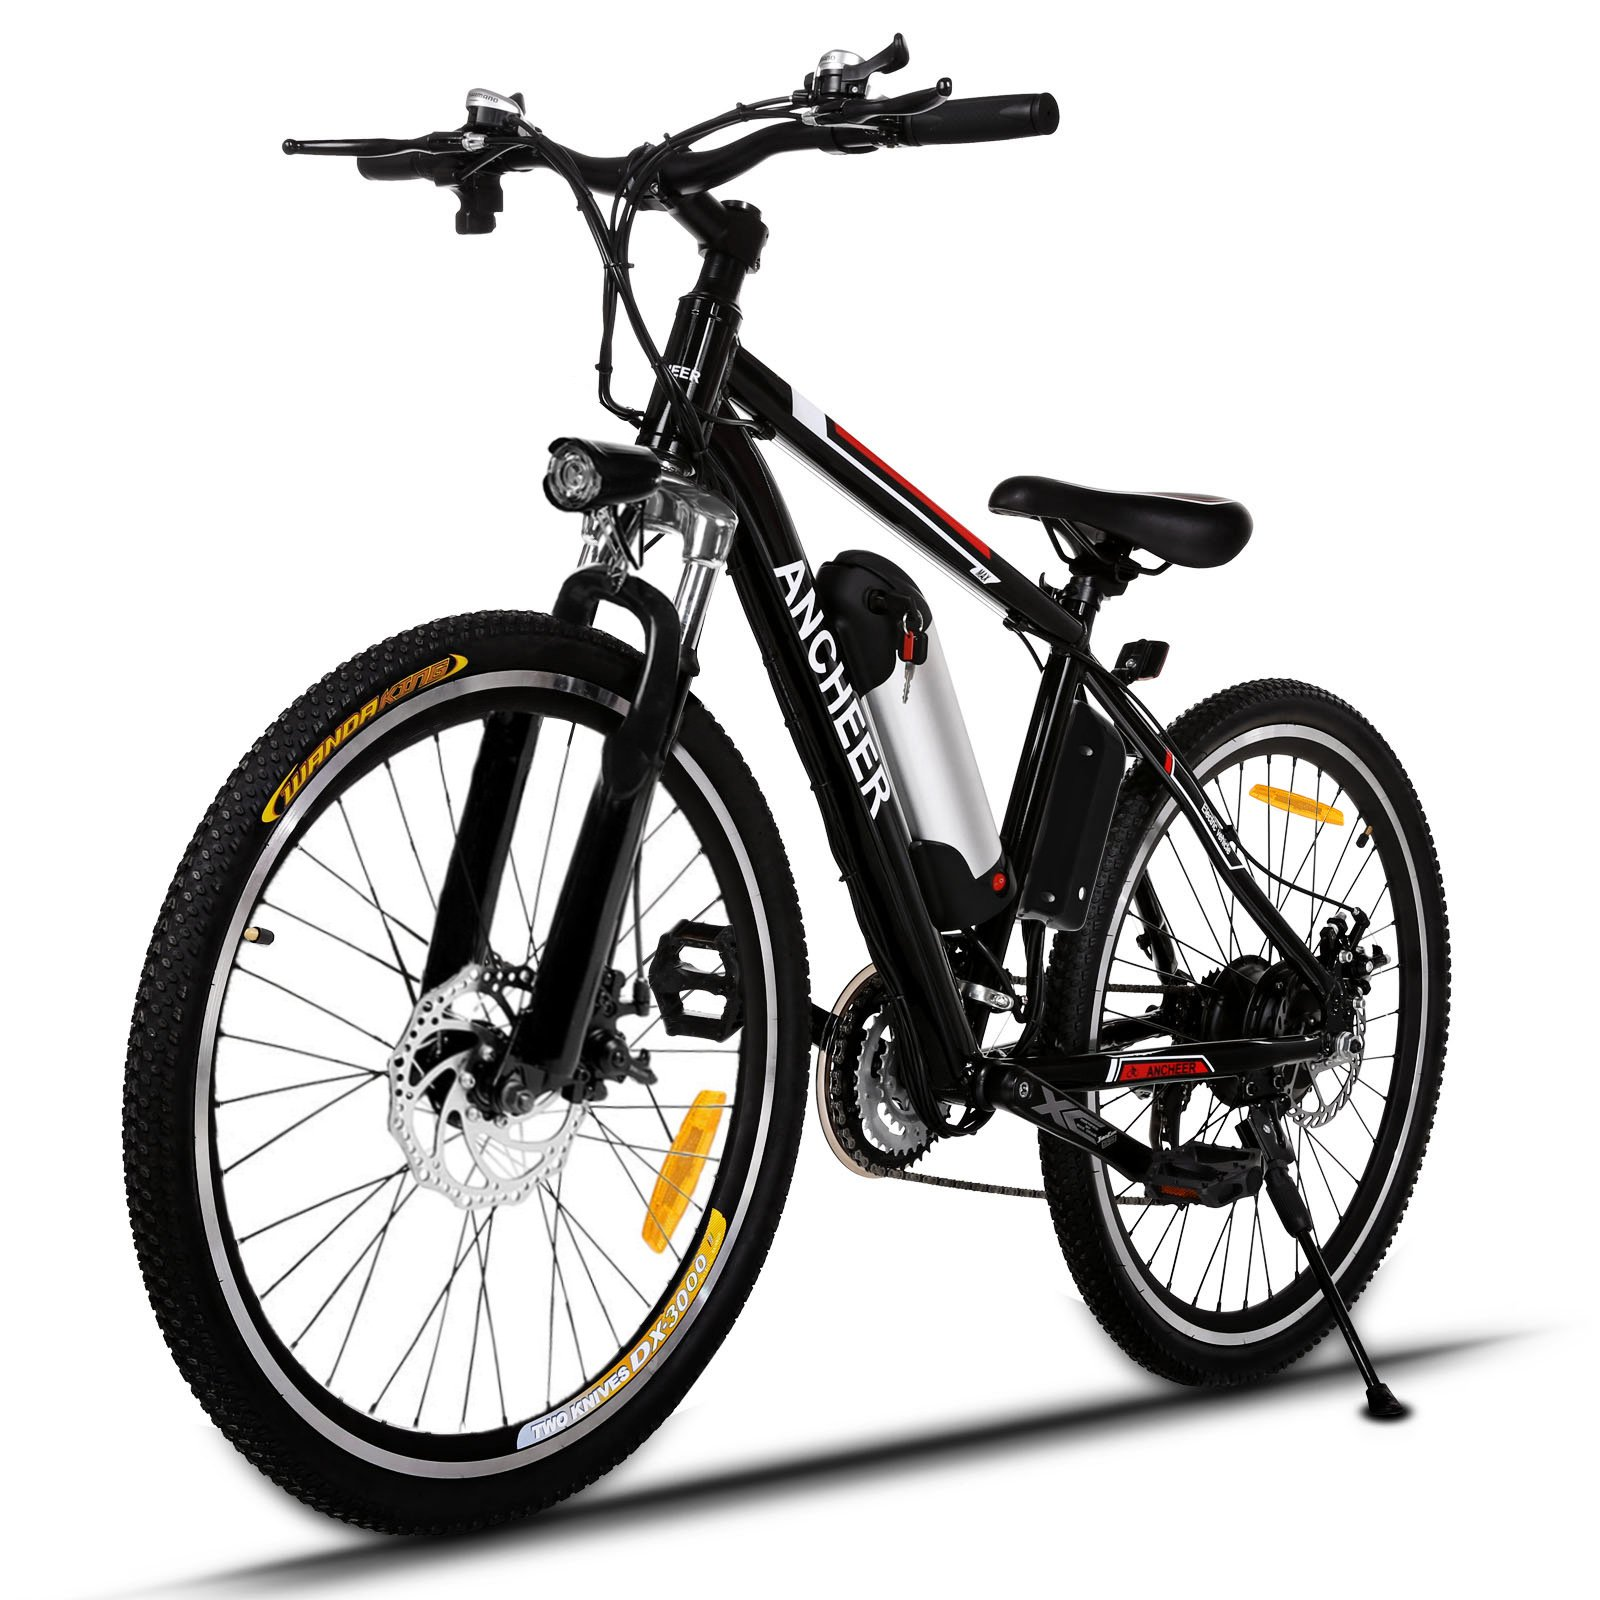 ANCHEER Power Plus Electric Mountain Bike, 26'' Electric Bike with Removable 36V 8Ah Lithium-Ion Battery, 21 Speed Shifter (Black) by ANCHEER